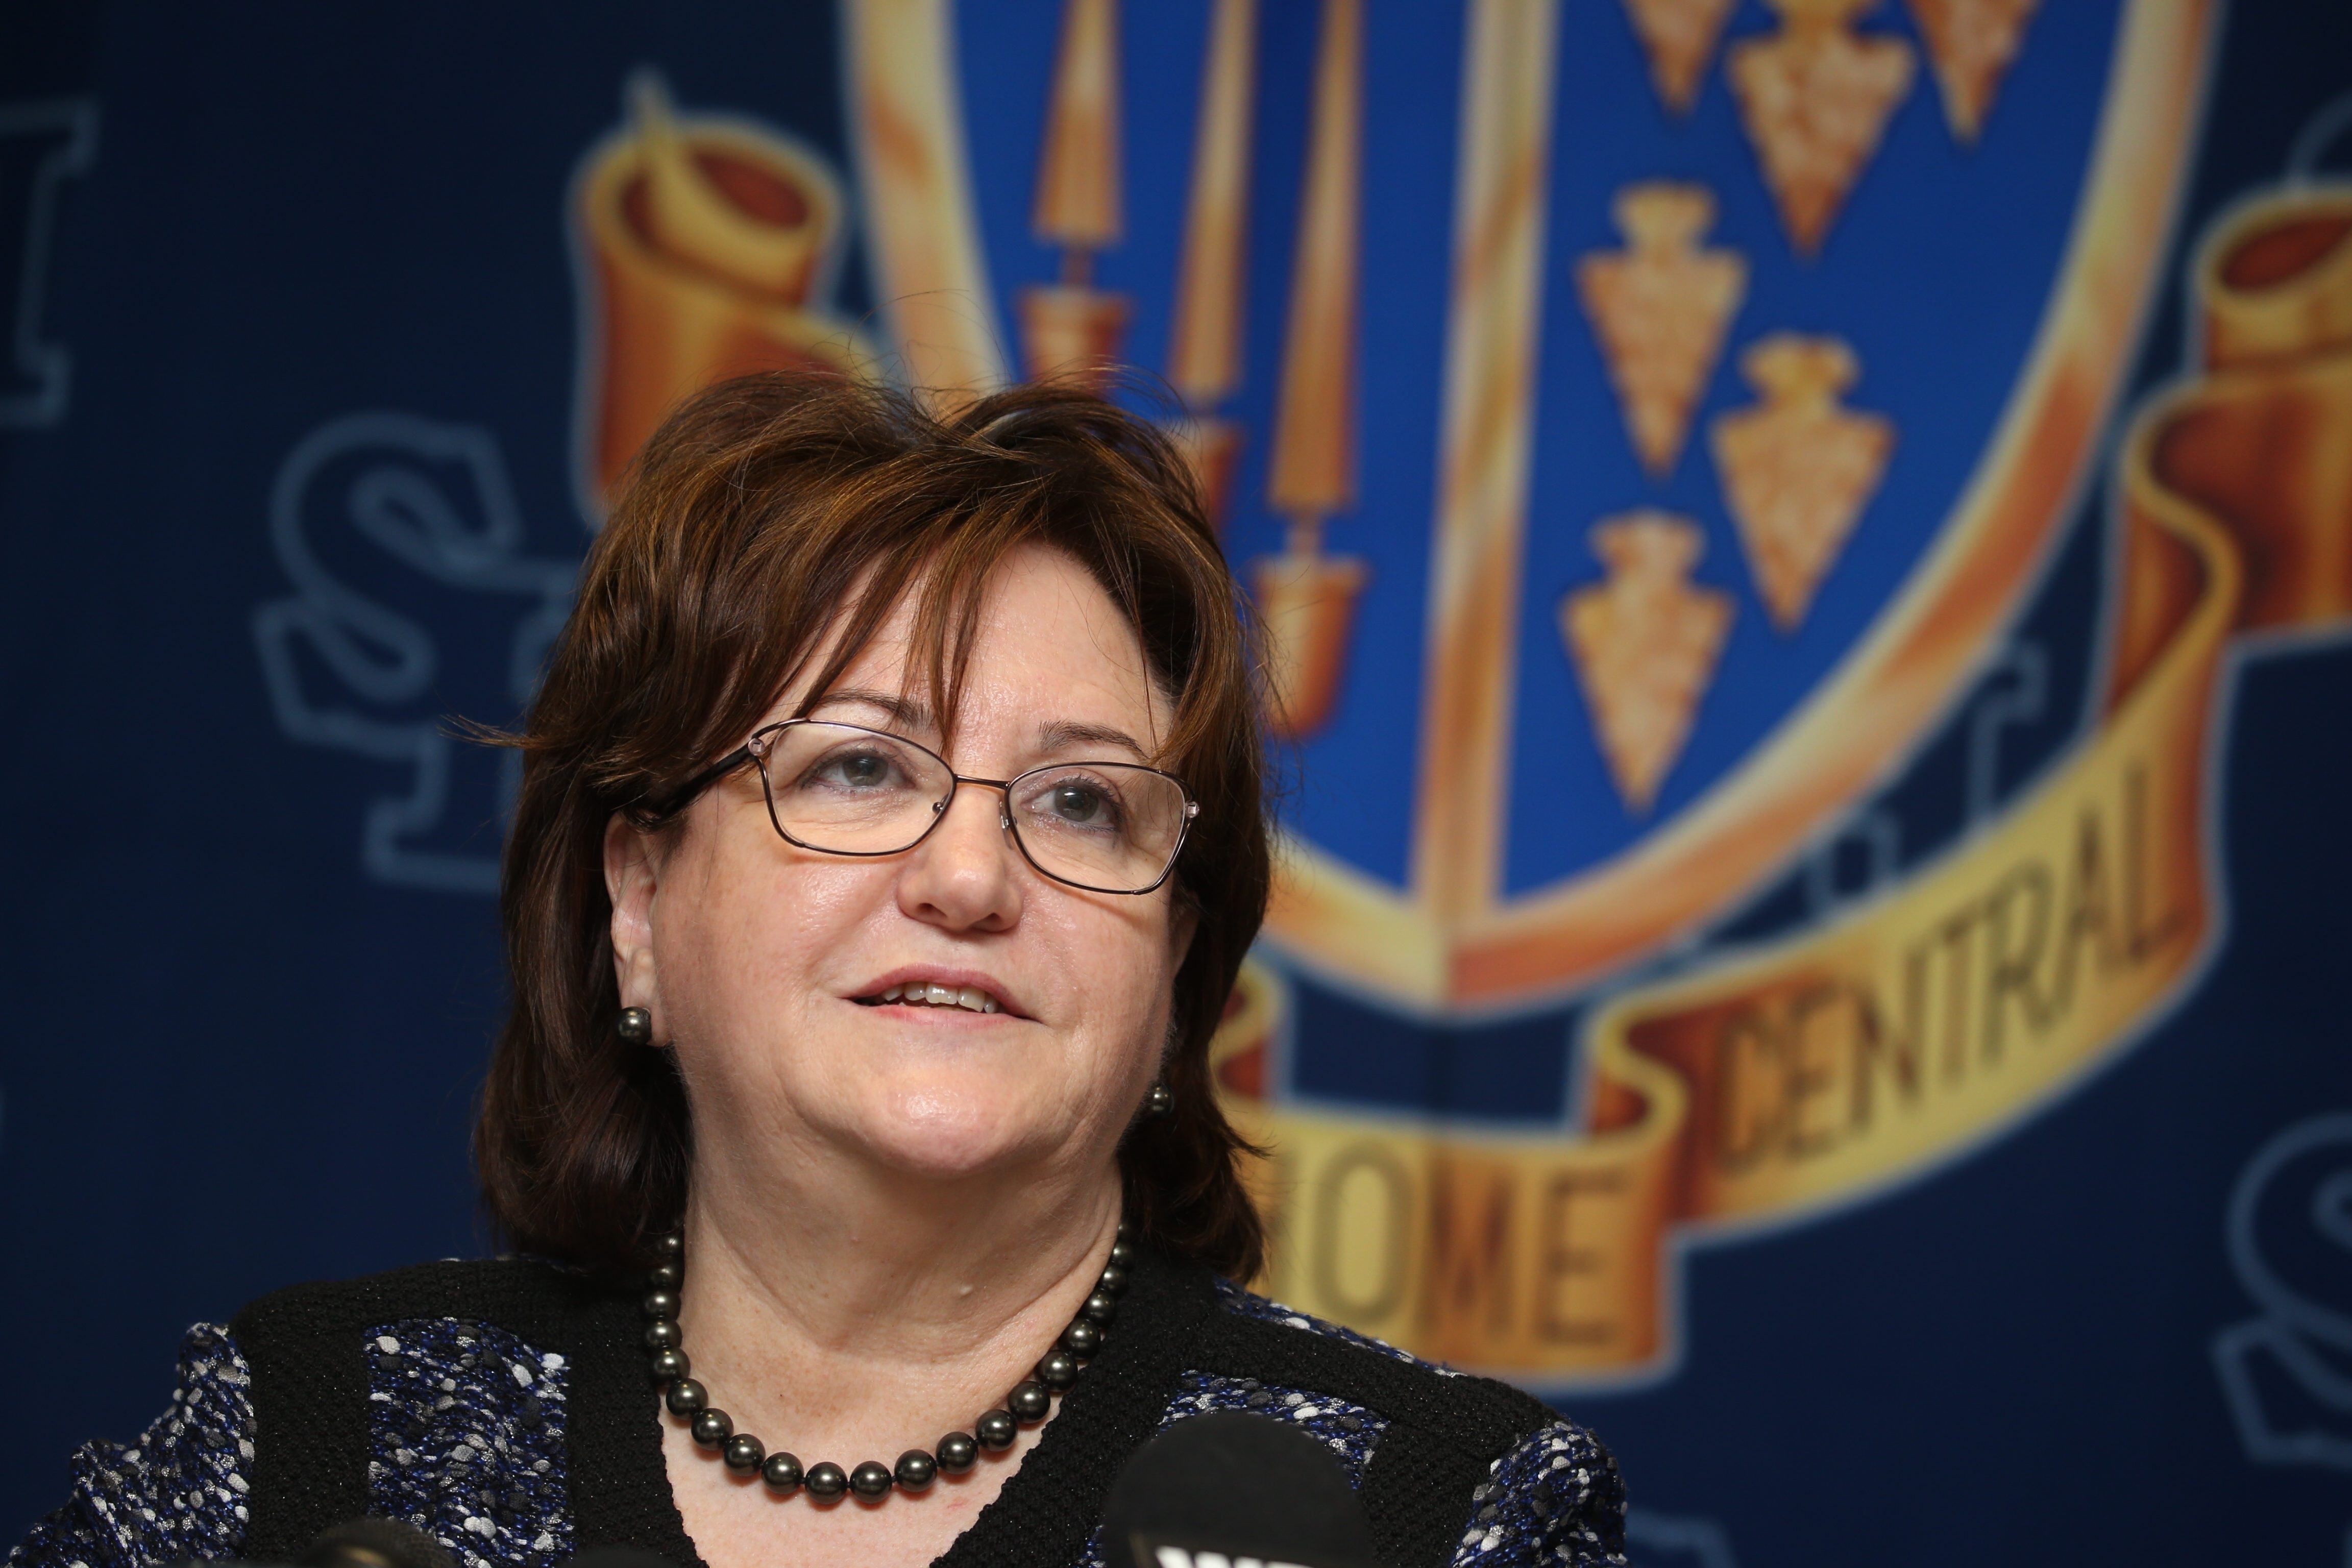 State Education Commissioner MaryEllen Elia announced changes.